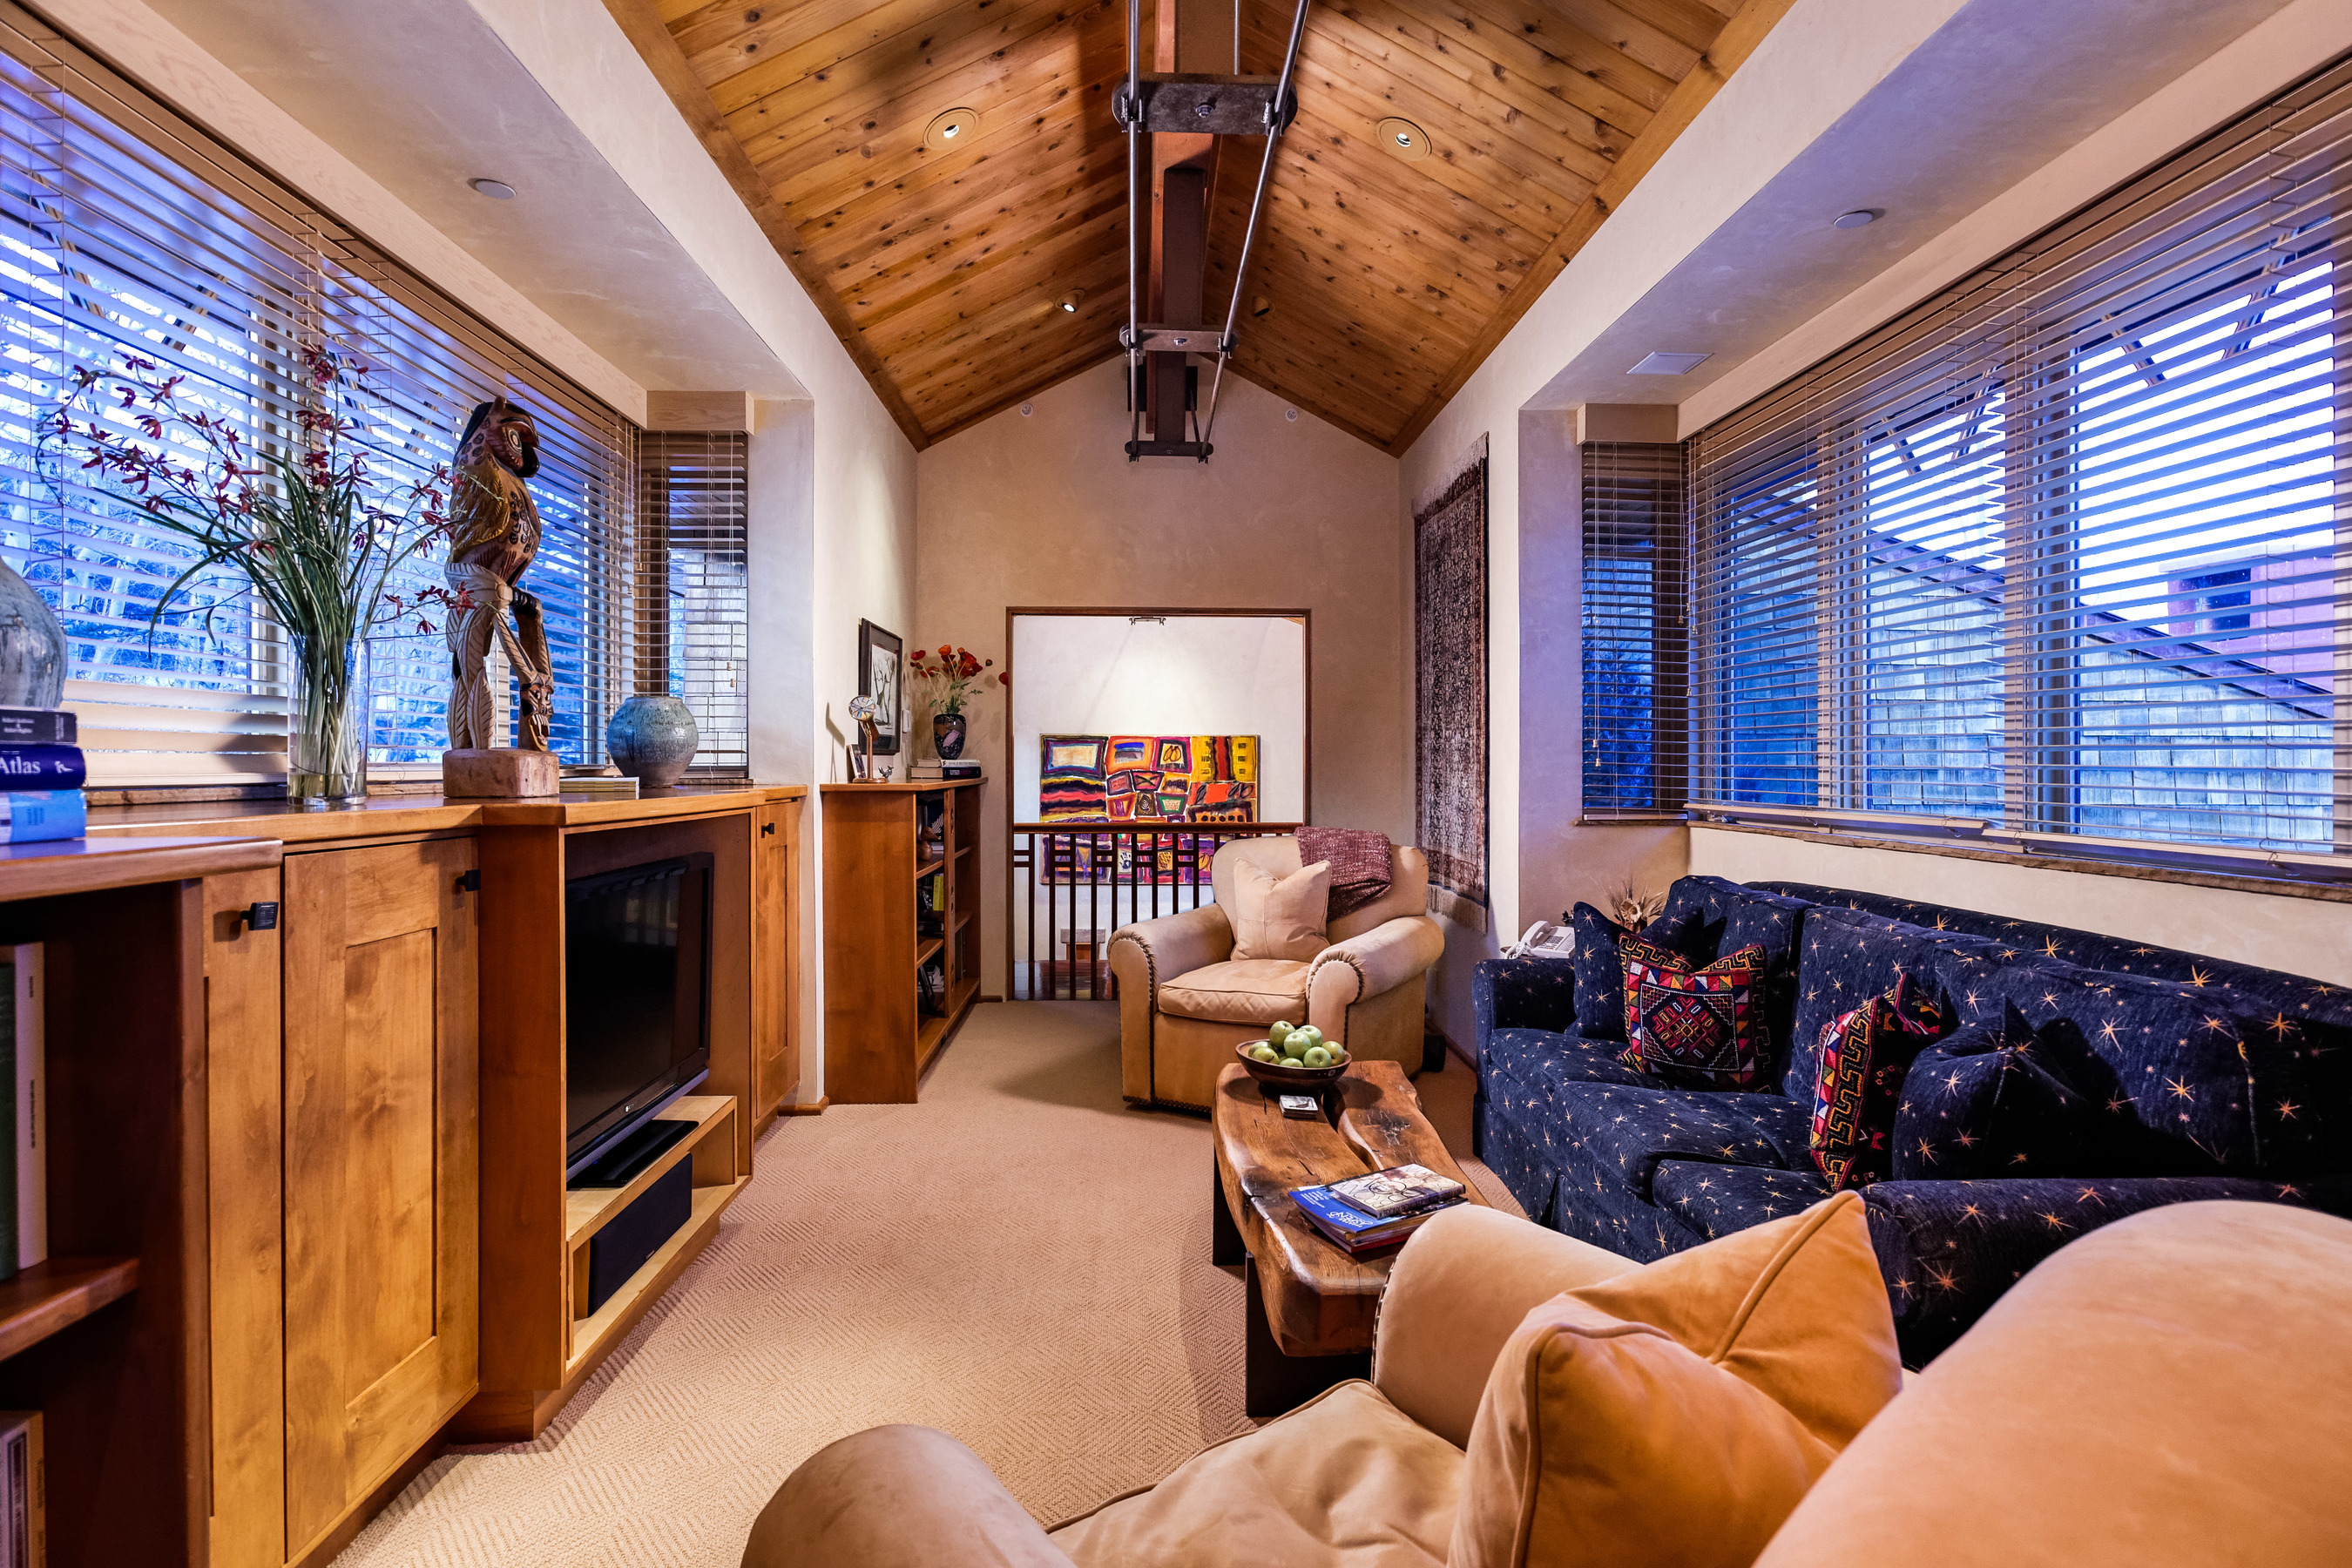 320 Ridge of Wildcat Snowmass Village Photo 39